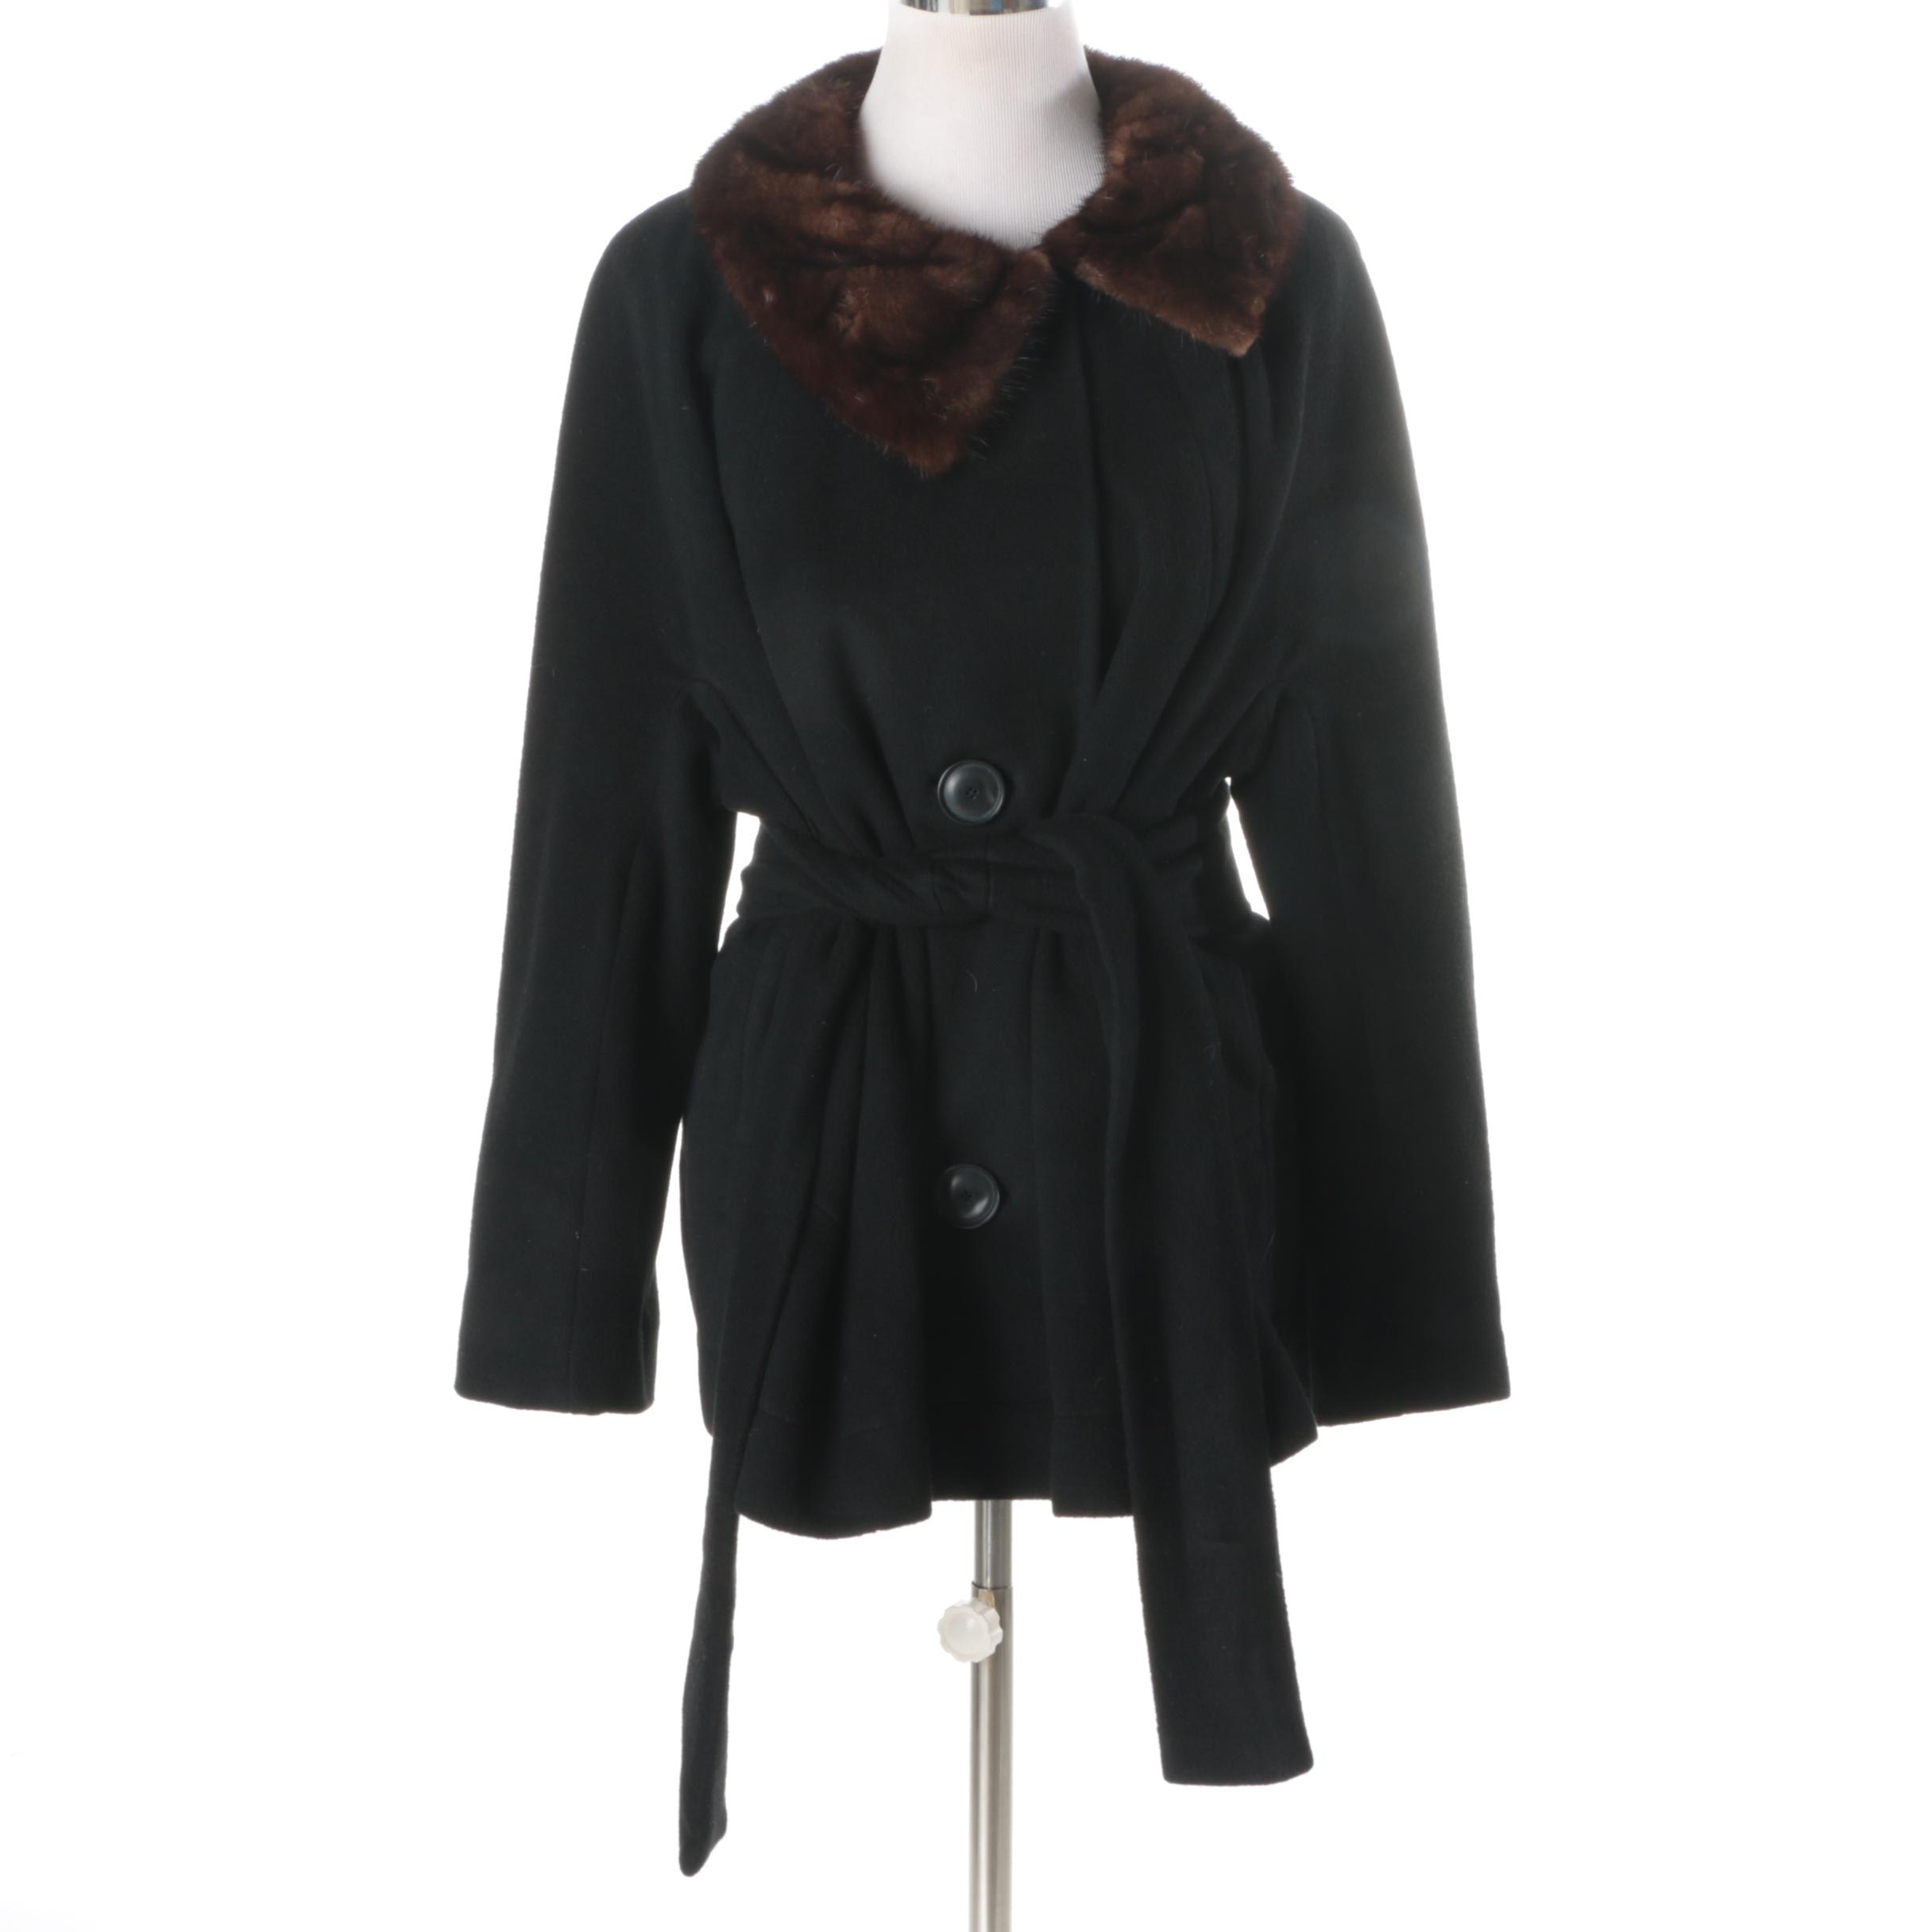 Women's Vintage Brentshire Cashmere Coat with Mink Fur Collar